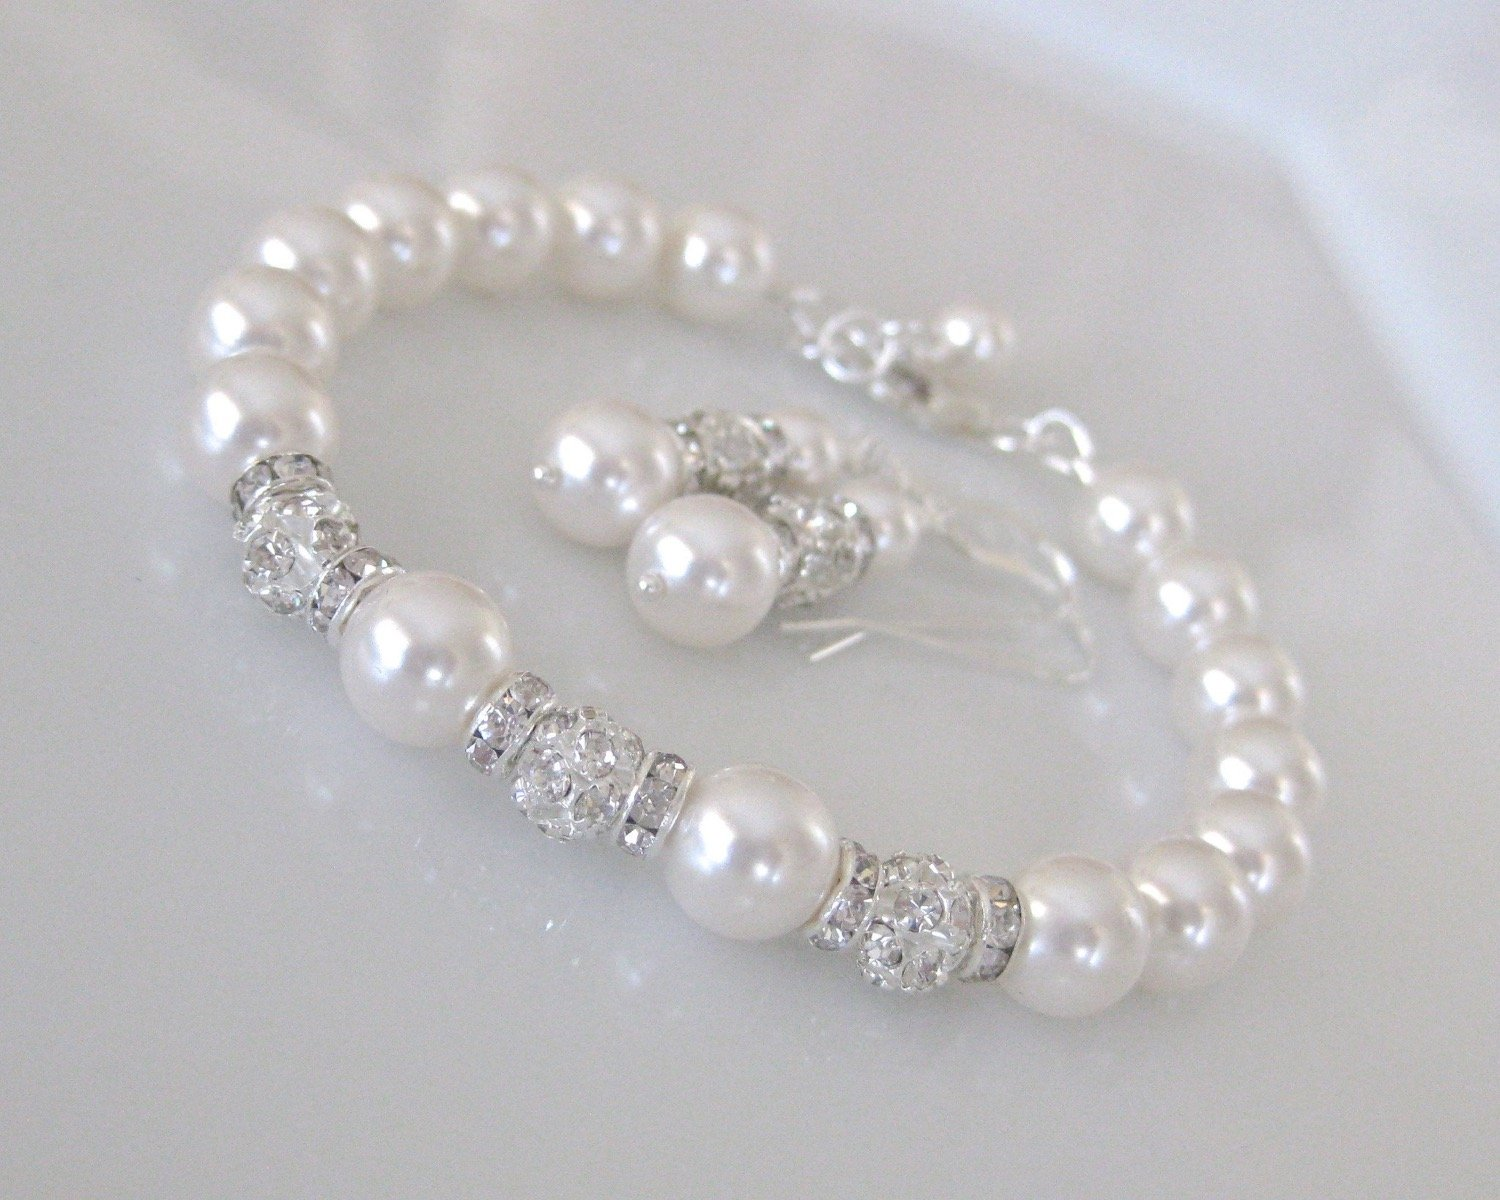 Bridal Jewelry Wedding Pearl Bracelet and Earring Set - Clairesbridal - 3